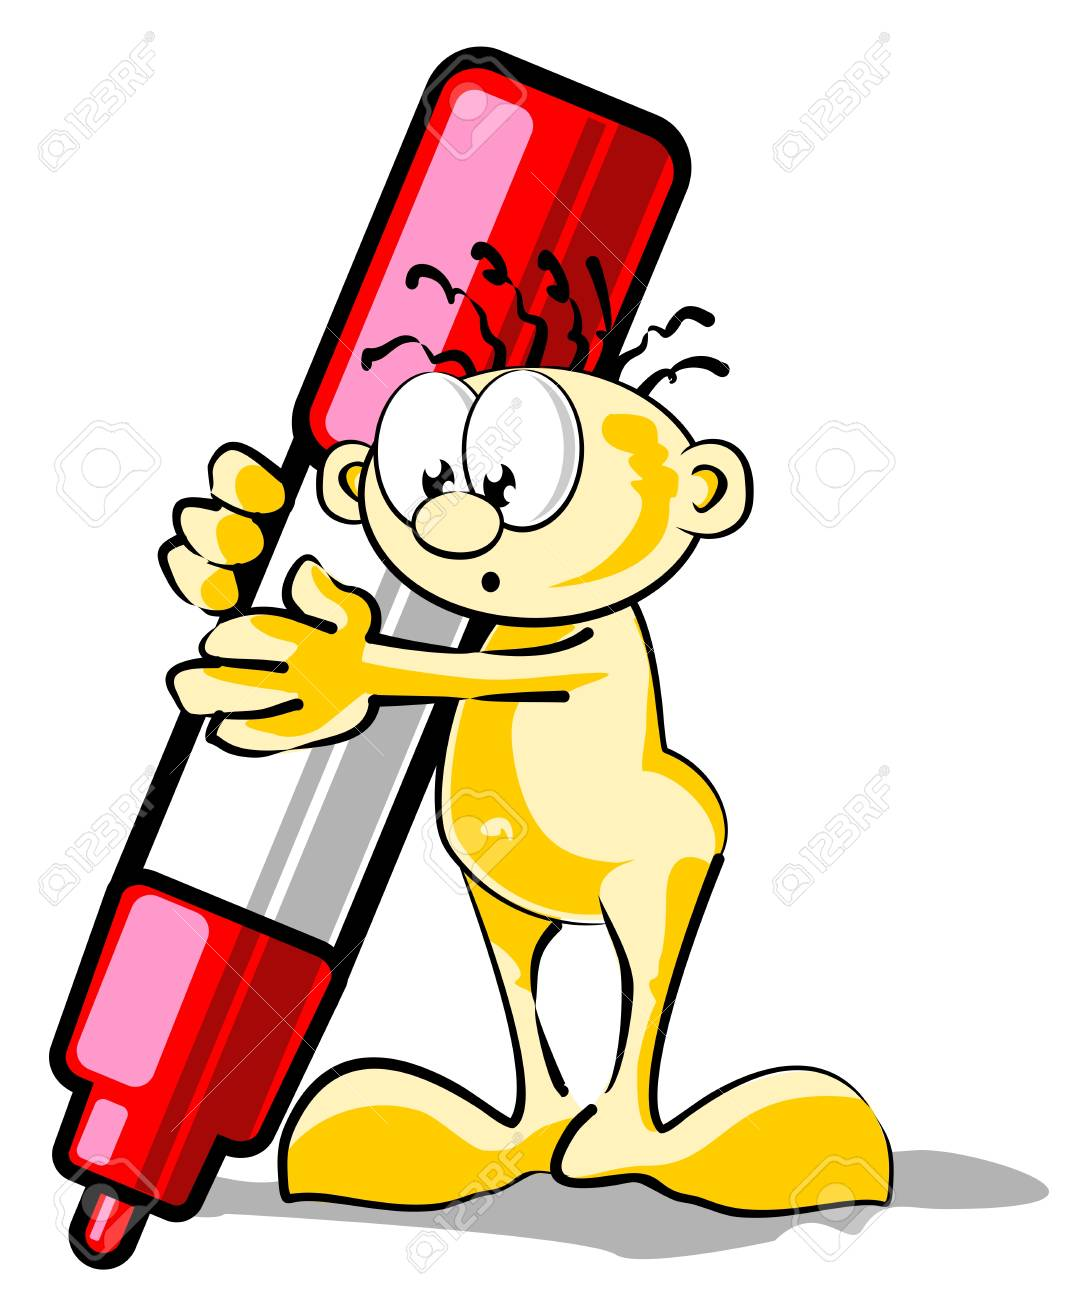 Conceptual illustration. A little man carrying a huge red marker. Stock Vector - 21458017